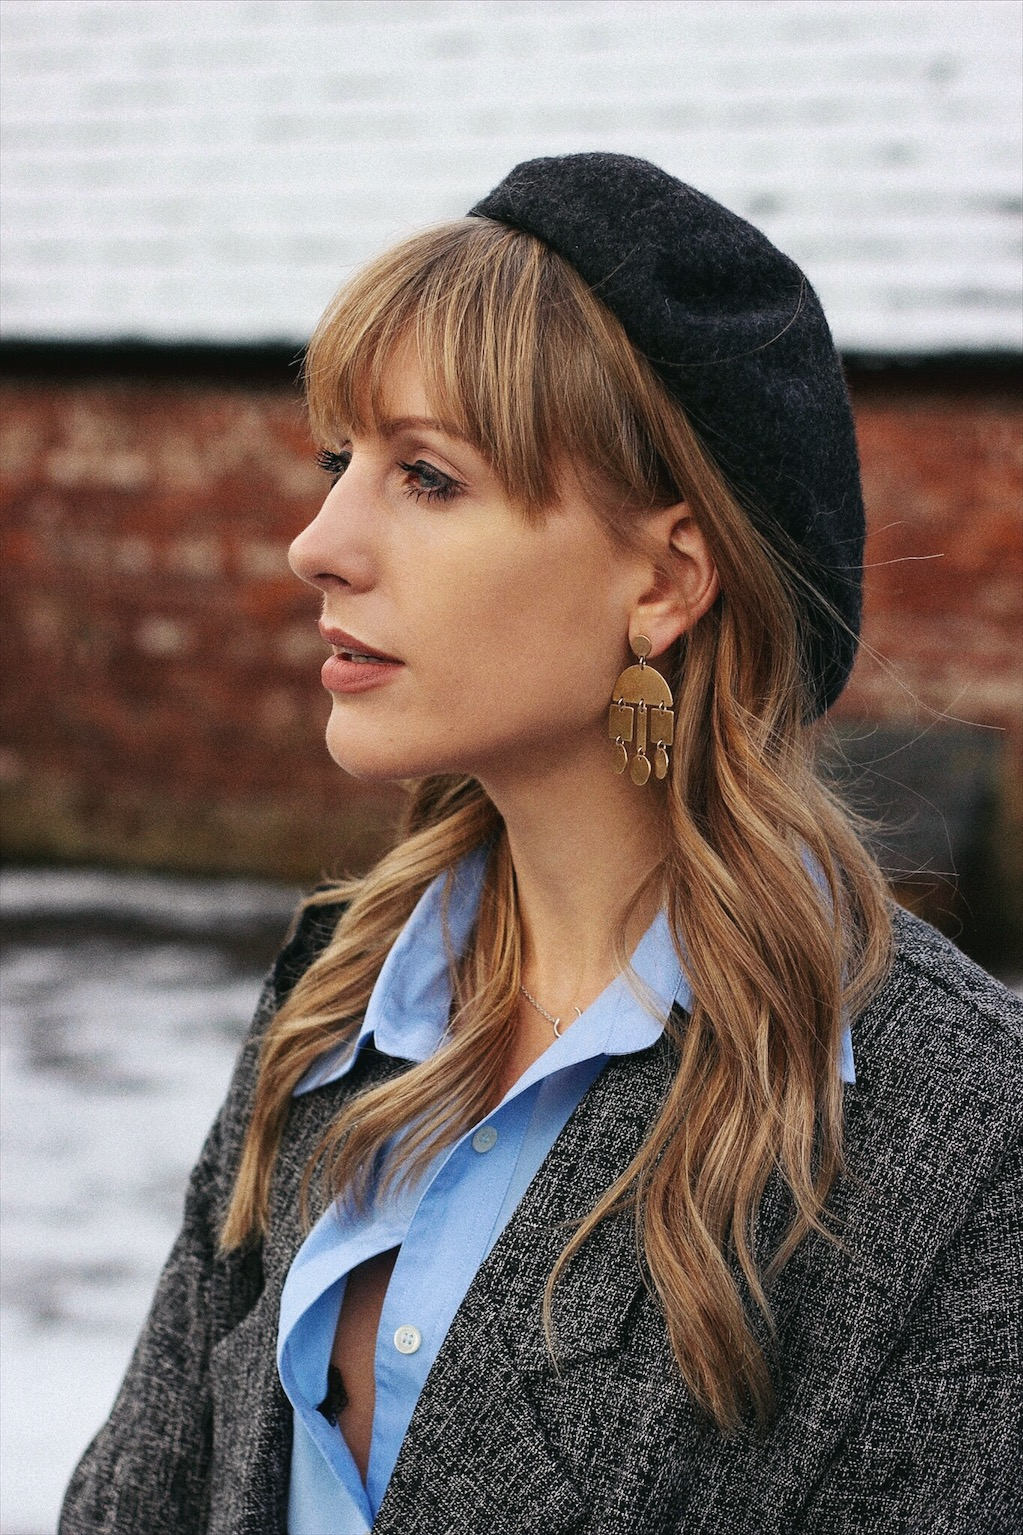 Beret street style inspiration on style blog